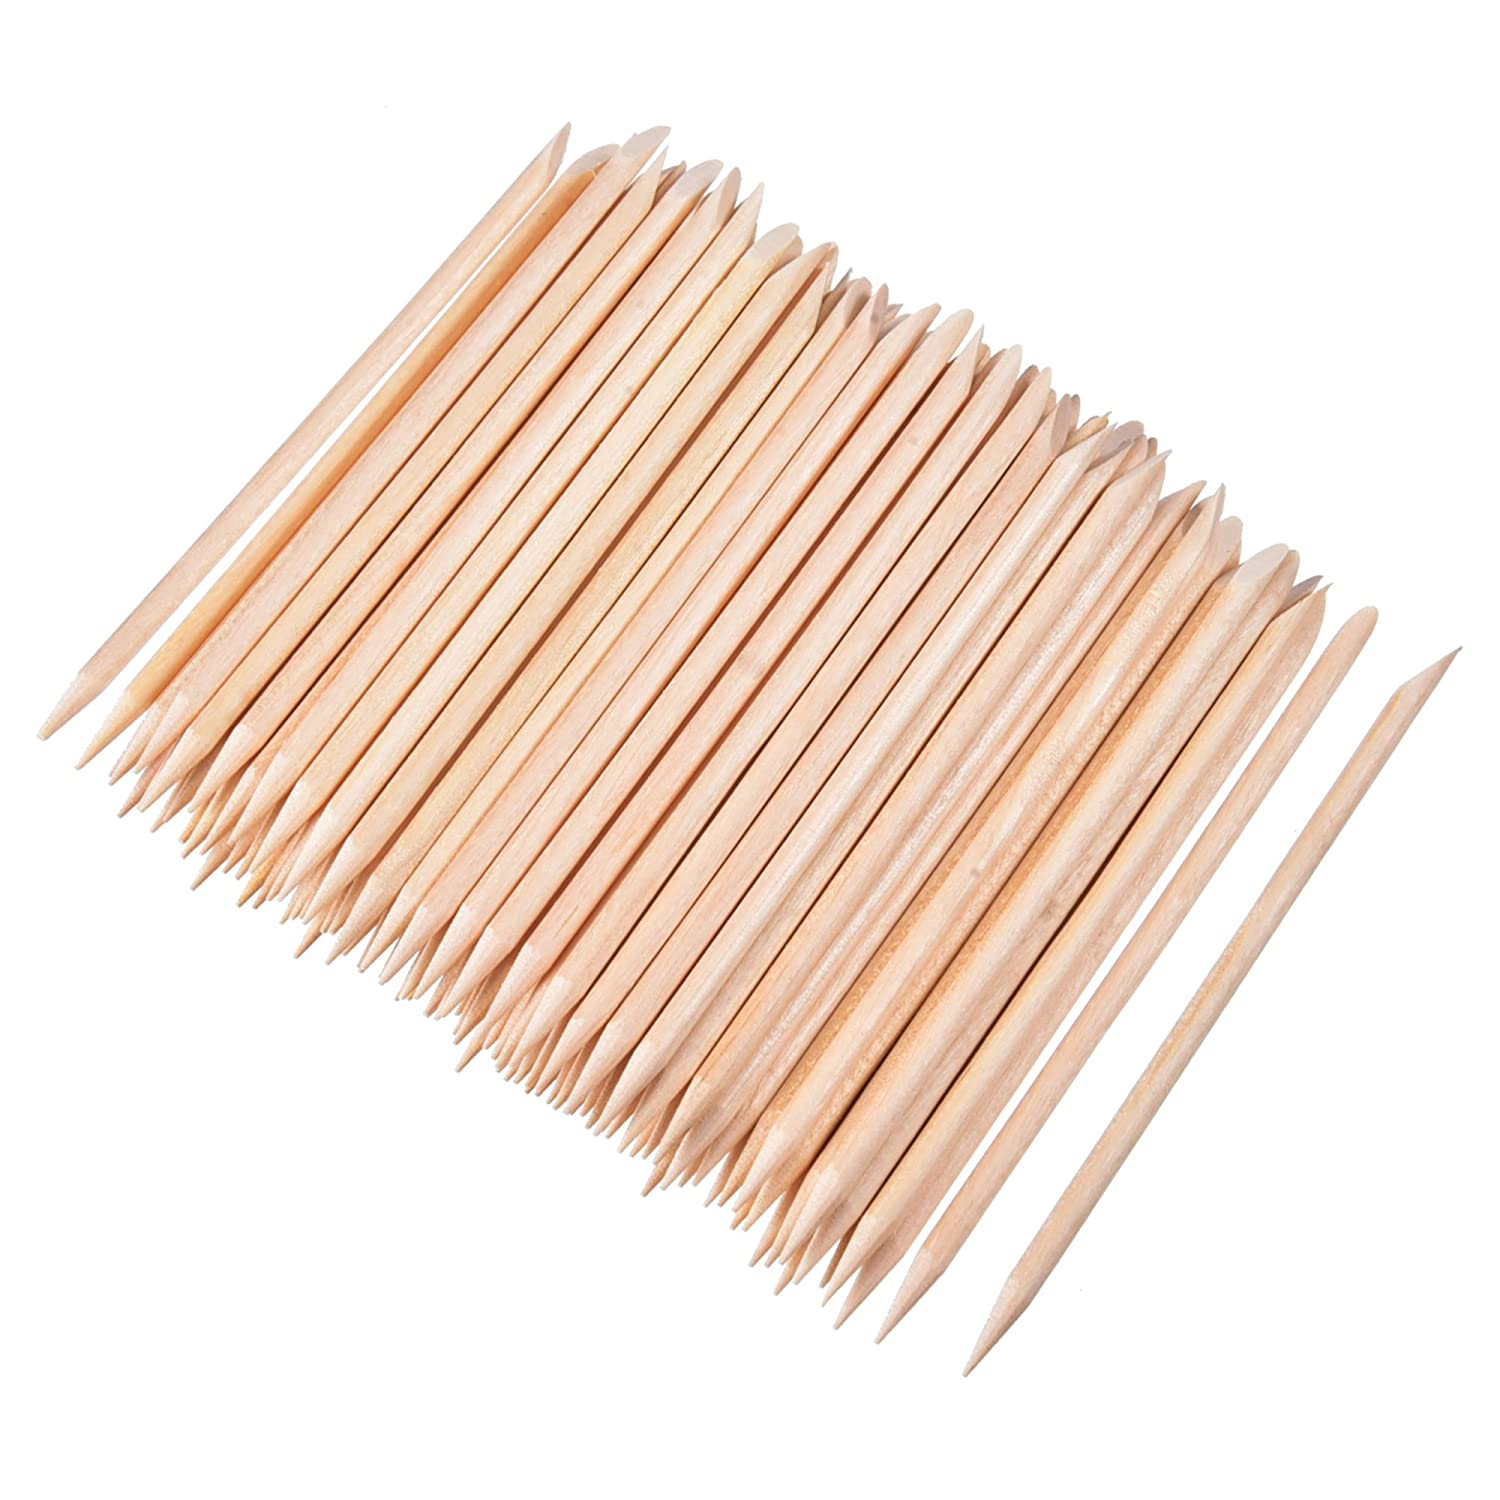 Hicarer 100 Pieces Orange Wood Sticks Nail Art Cuticle Stick for Pusher Remover Manicure Pedicure, 4.3 Inches